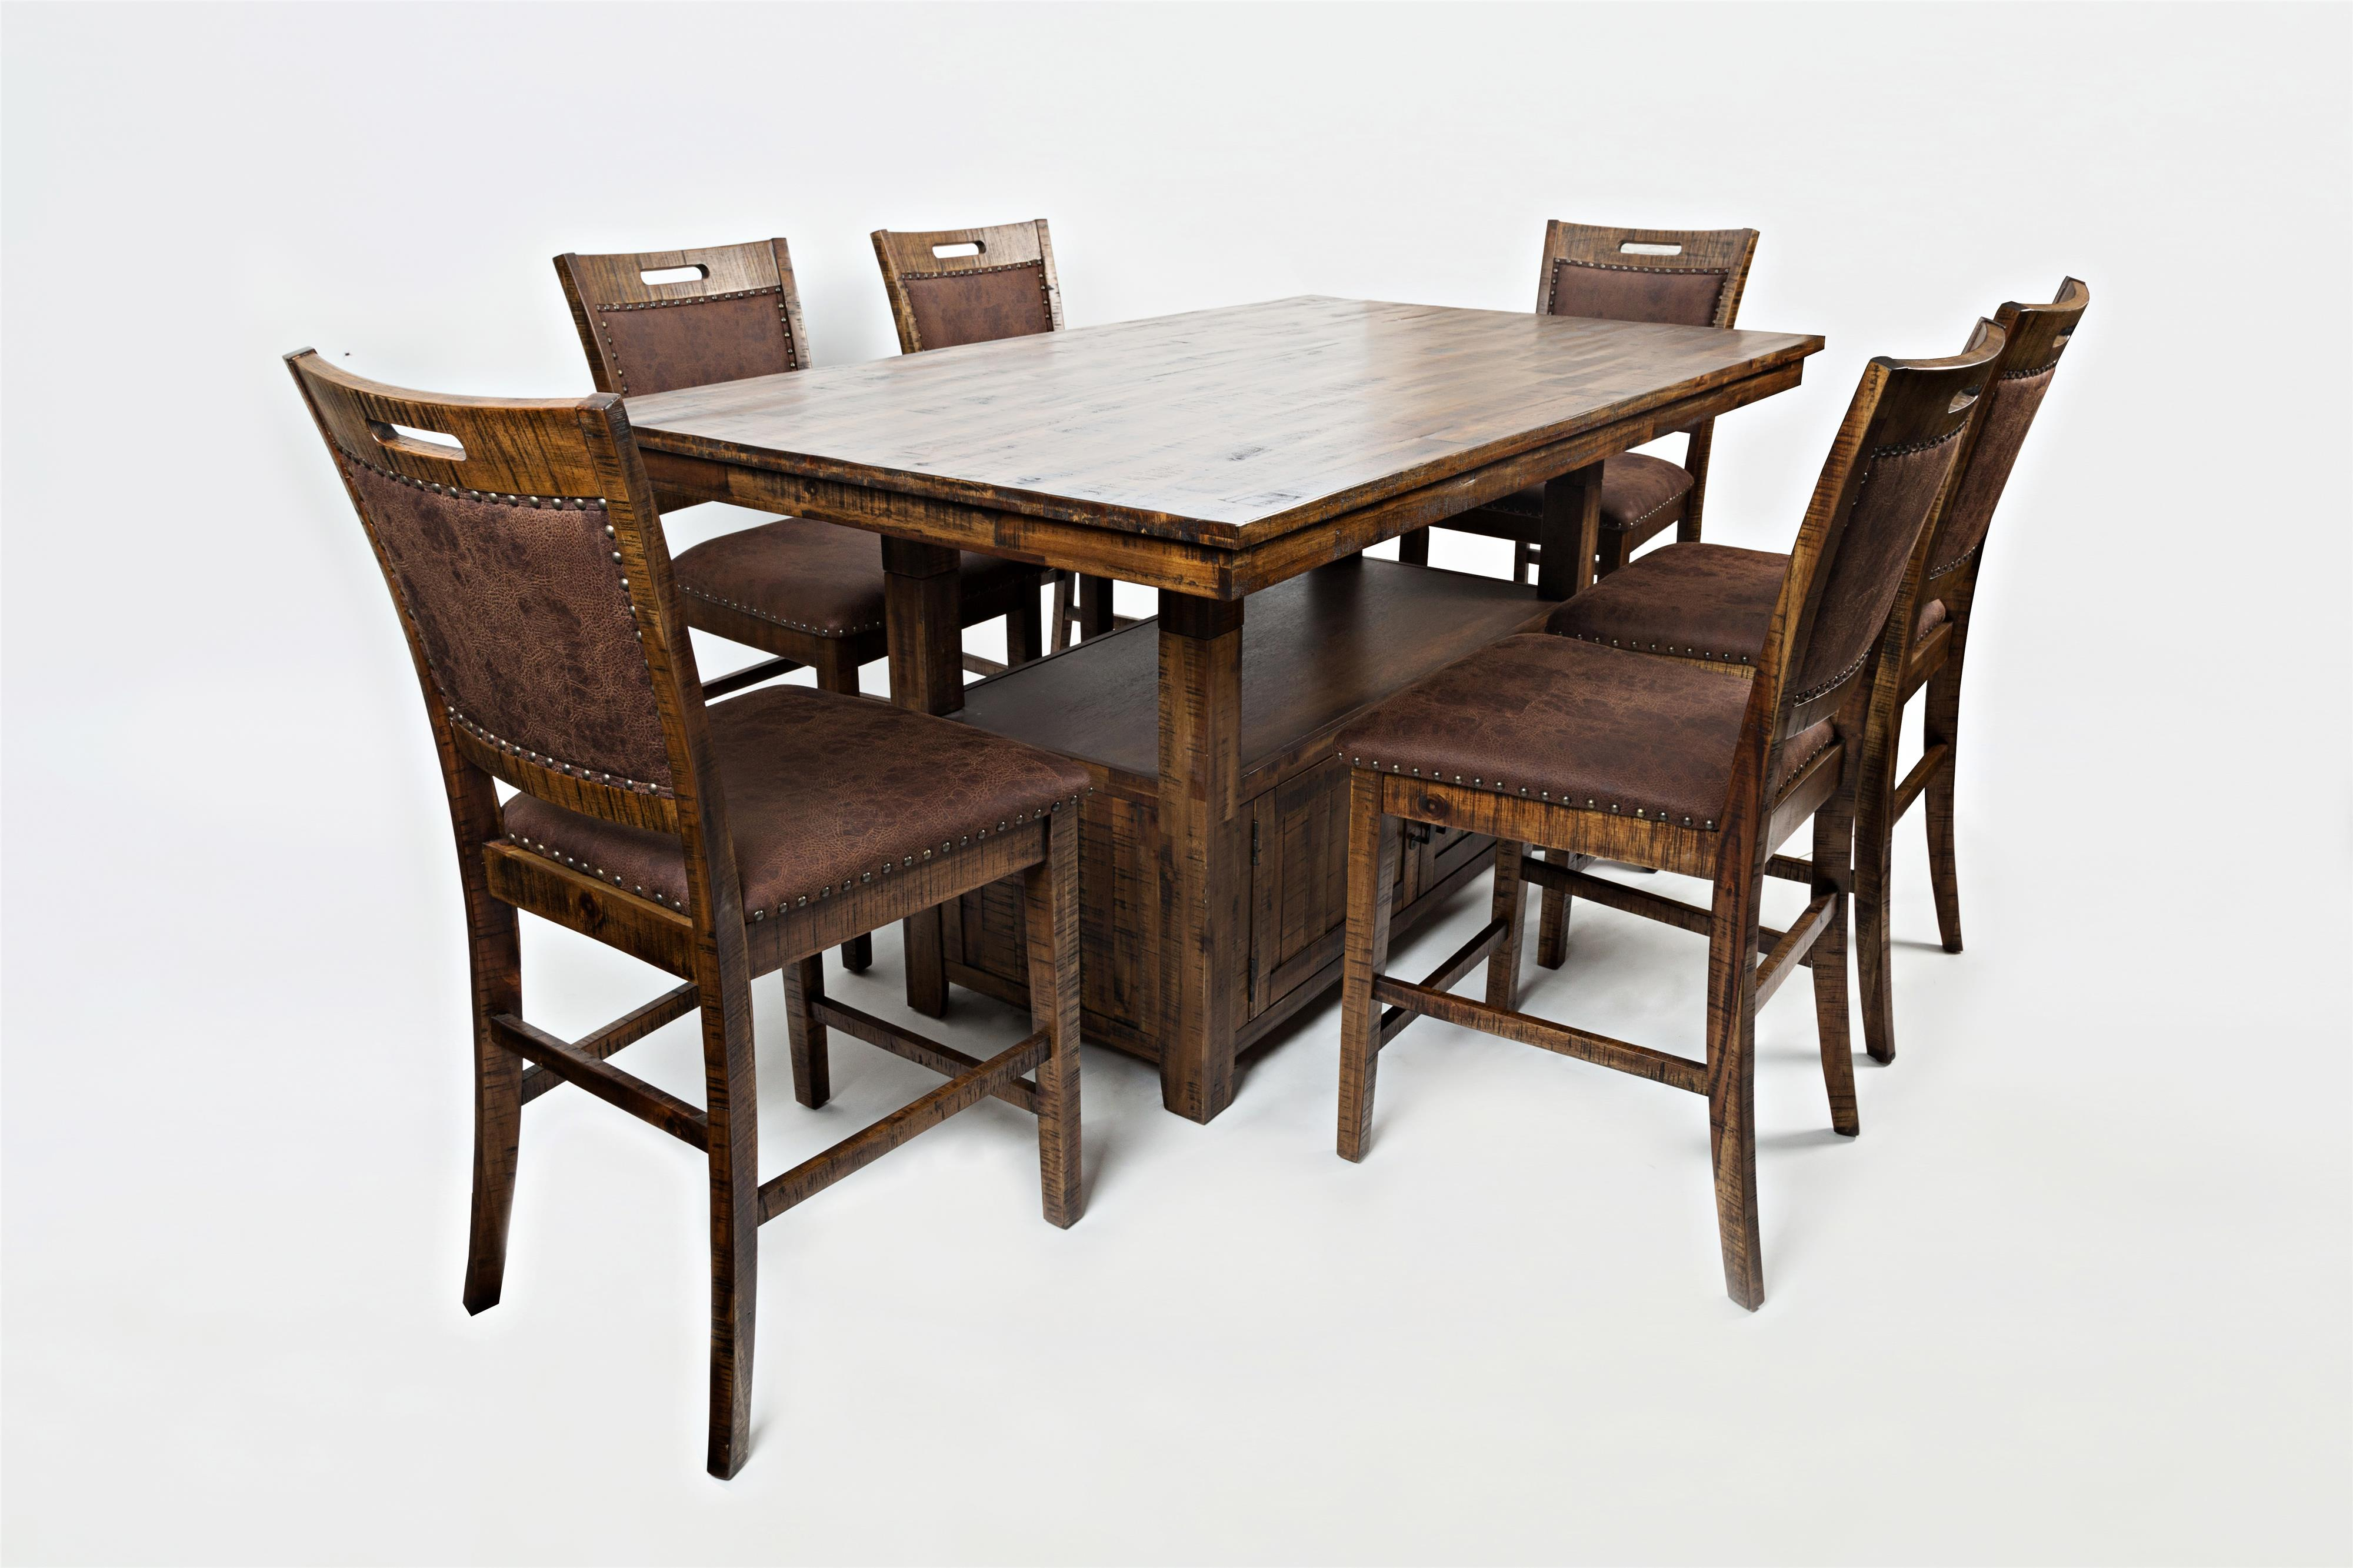 Cannon Valley High/Low Table and Chair Set by Jofran at Beck's Furniture